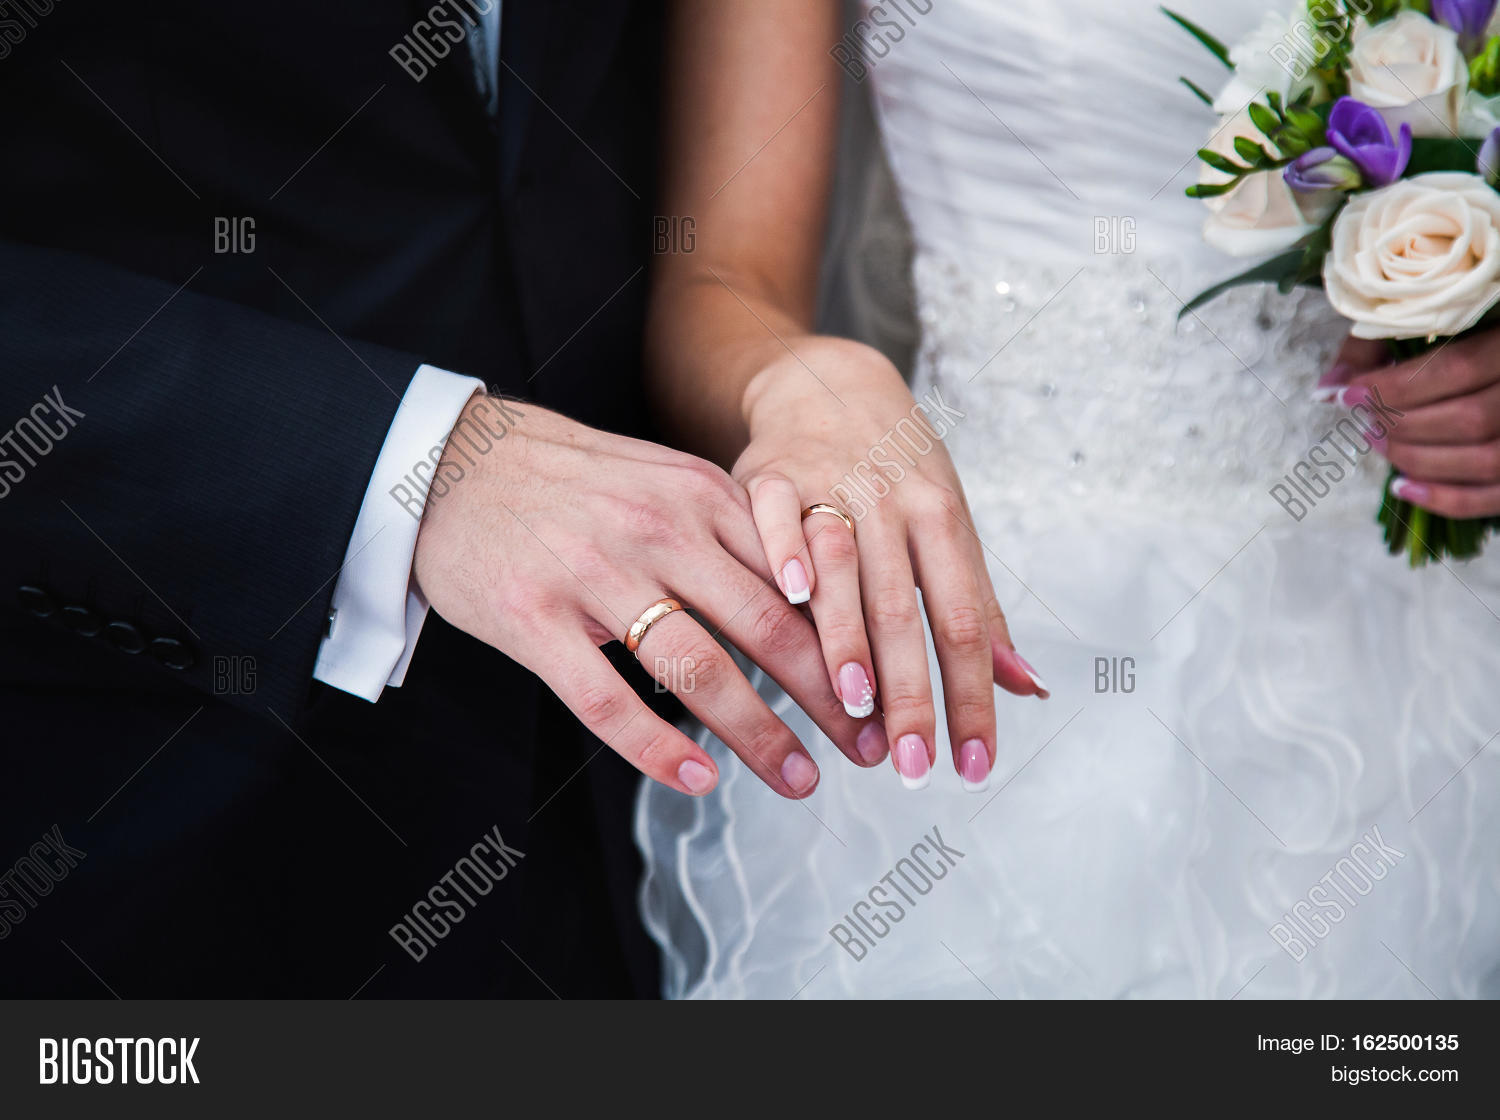 Bride And Groom Next To Wedding Rings On Their Hands Male And Female Hand With Wedding Rings